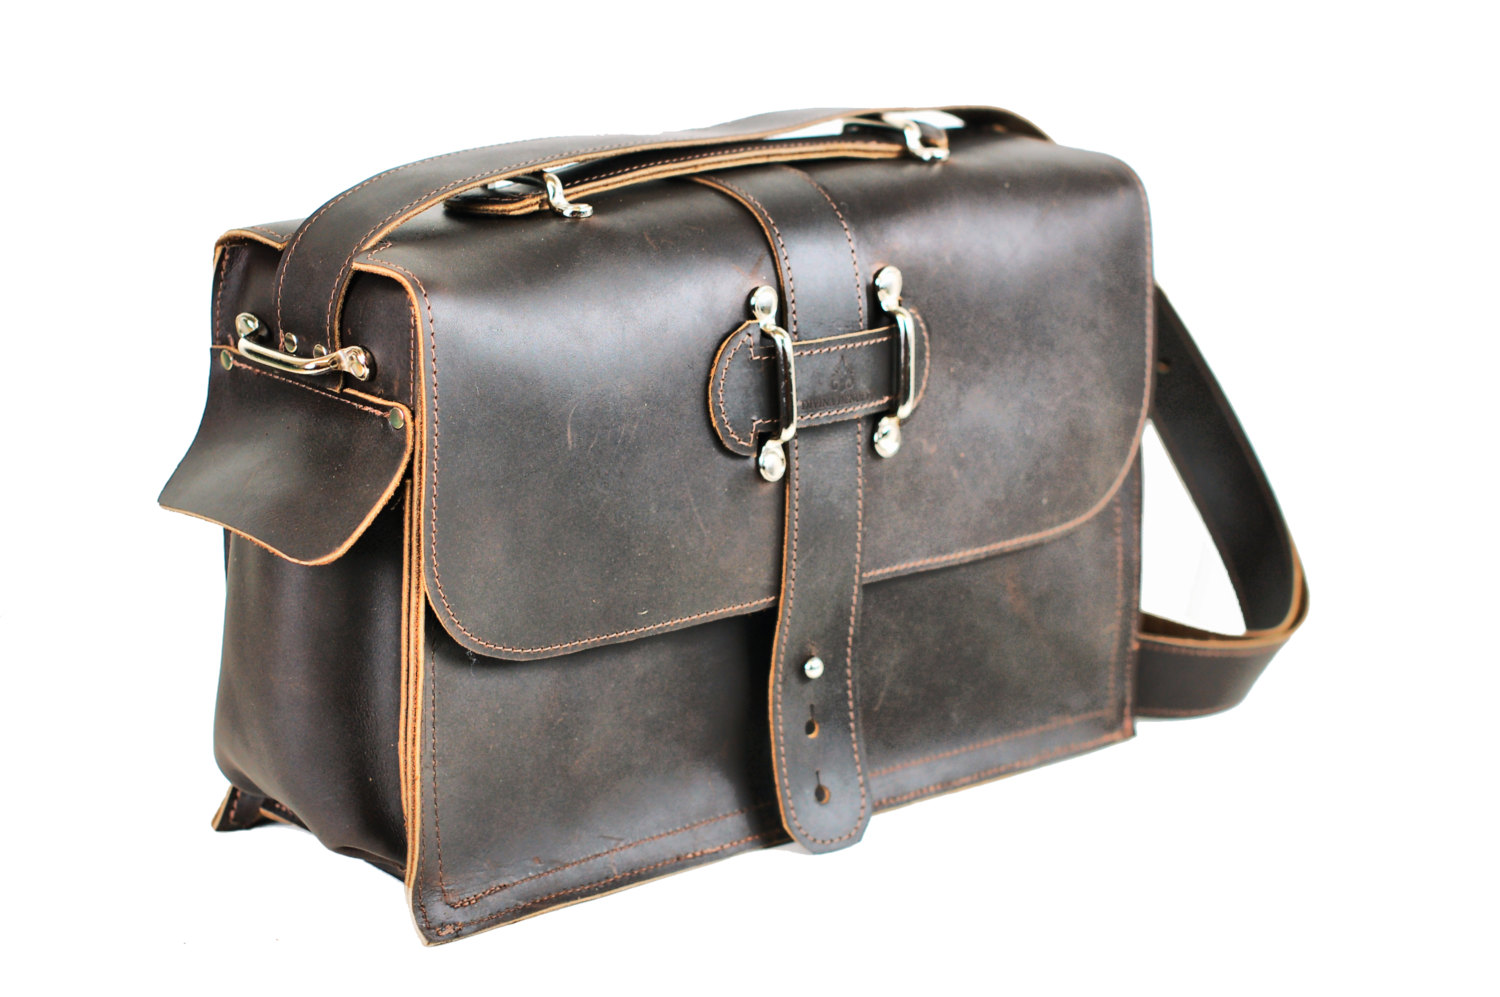 Men's Luggage & Briefcases Men. COLLECTIONS & Distressed Leather Messenger $ Free Standard Shipping on orders $ or more travel bags, messenger bags, backpacks and accessories made from premium materials including leather, suede, wool, canvas, cotton, crocodile and alligator.